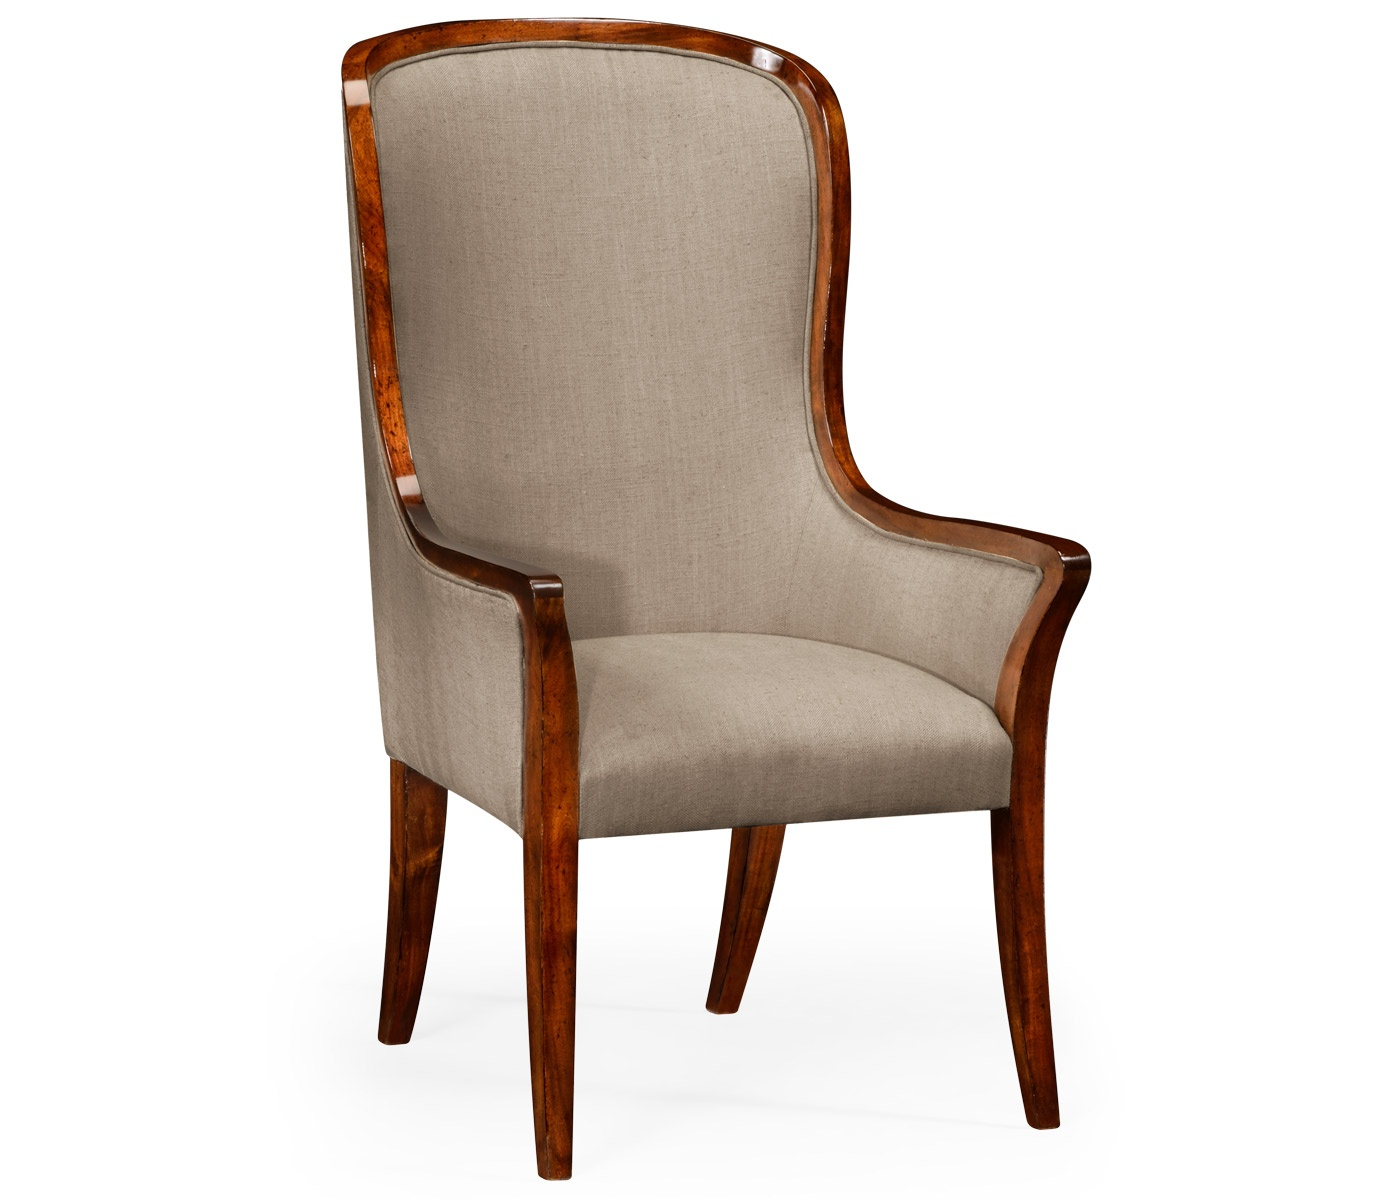 High back upholstered dining armchair swanky interiors for Armchair furniture